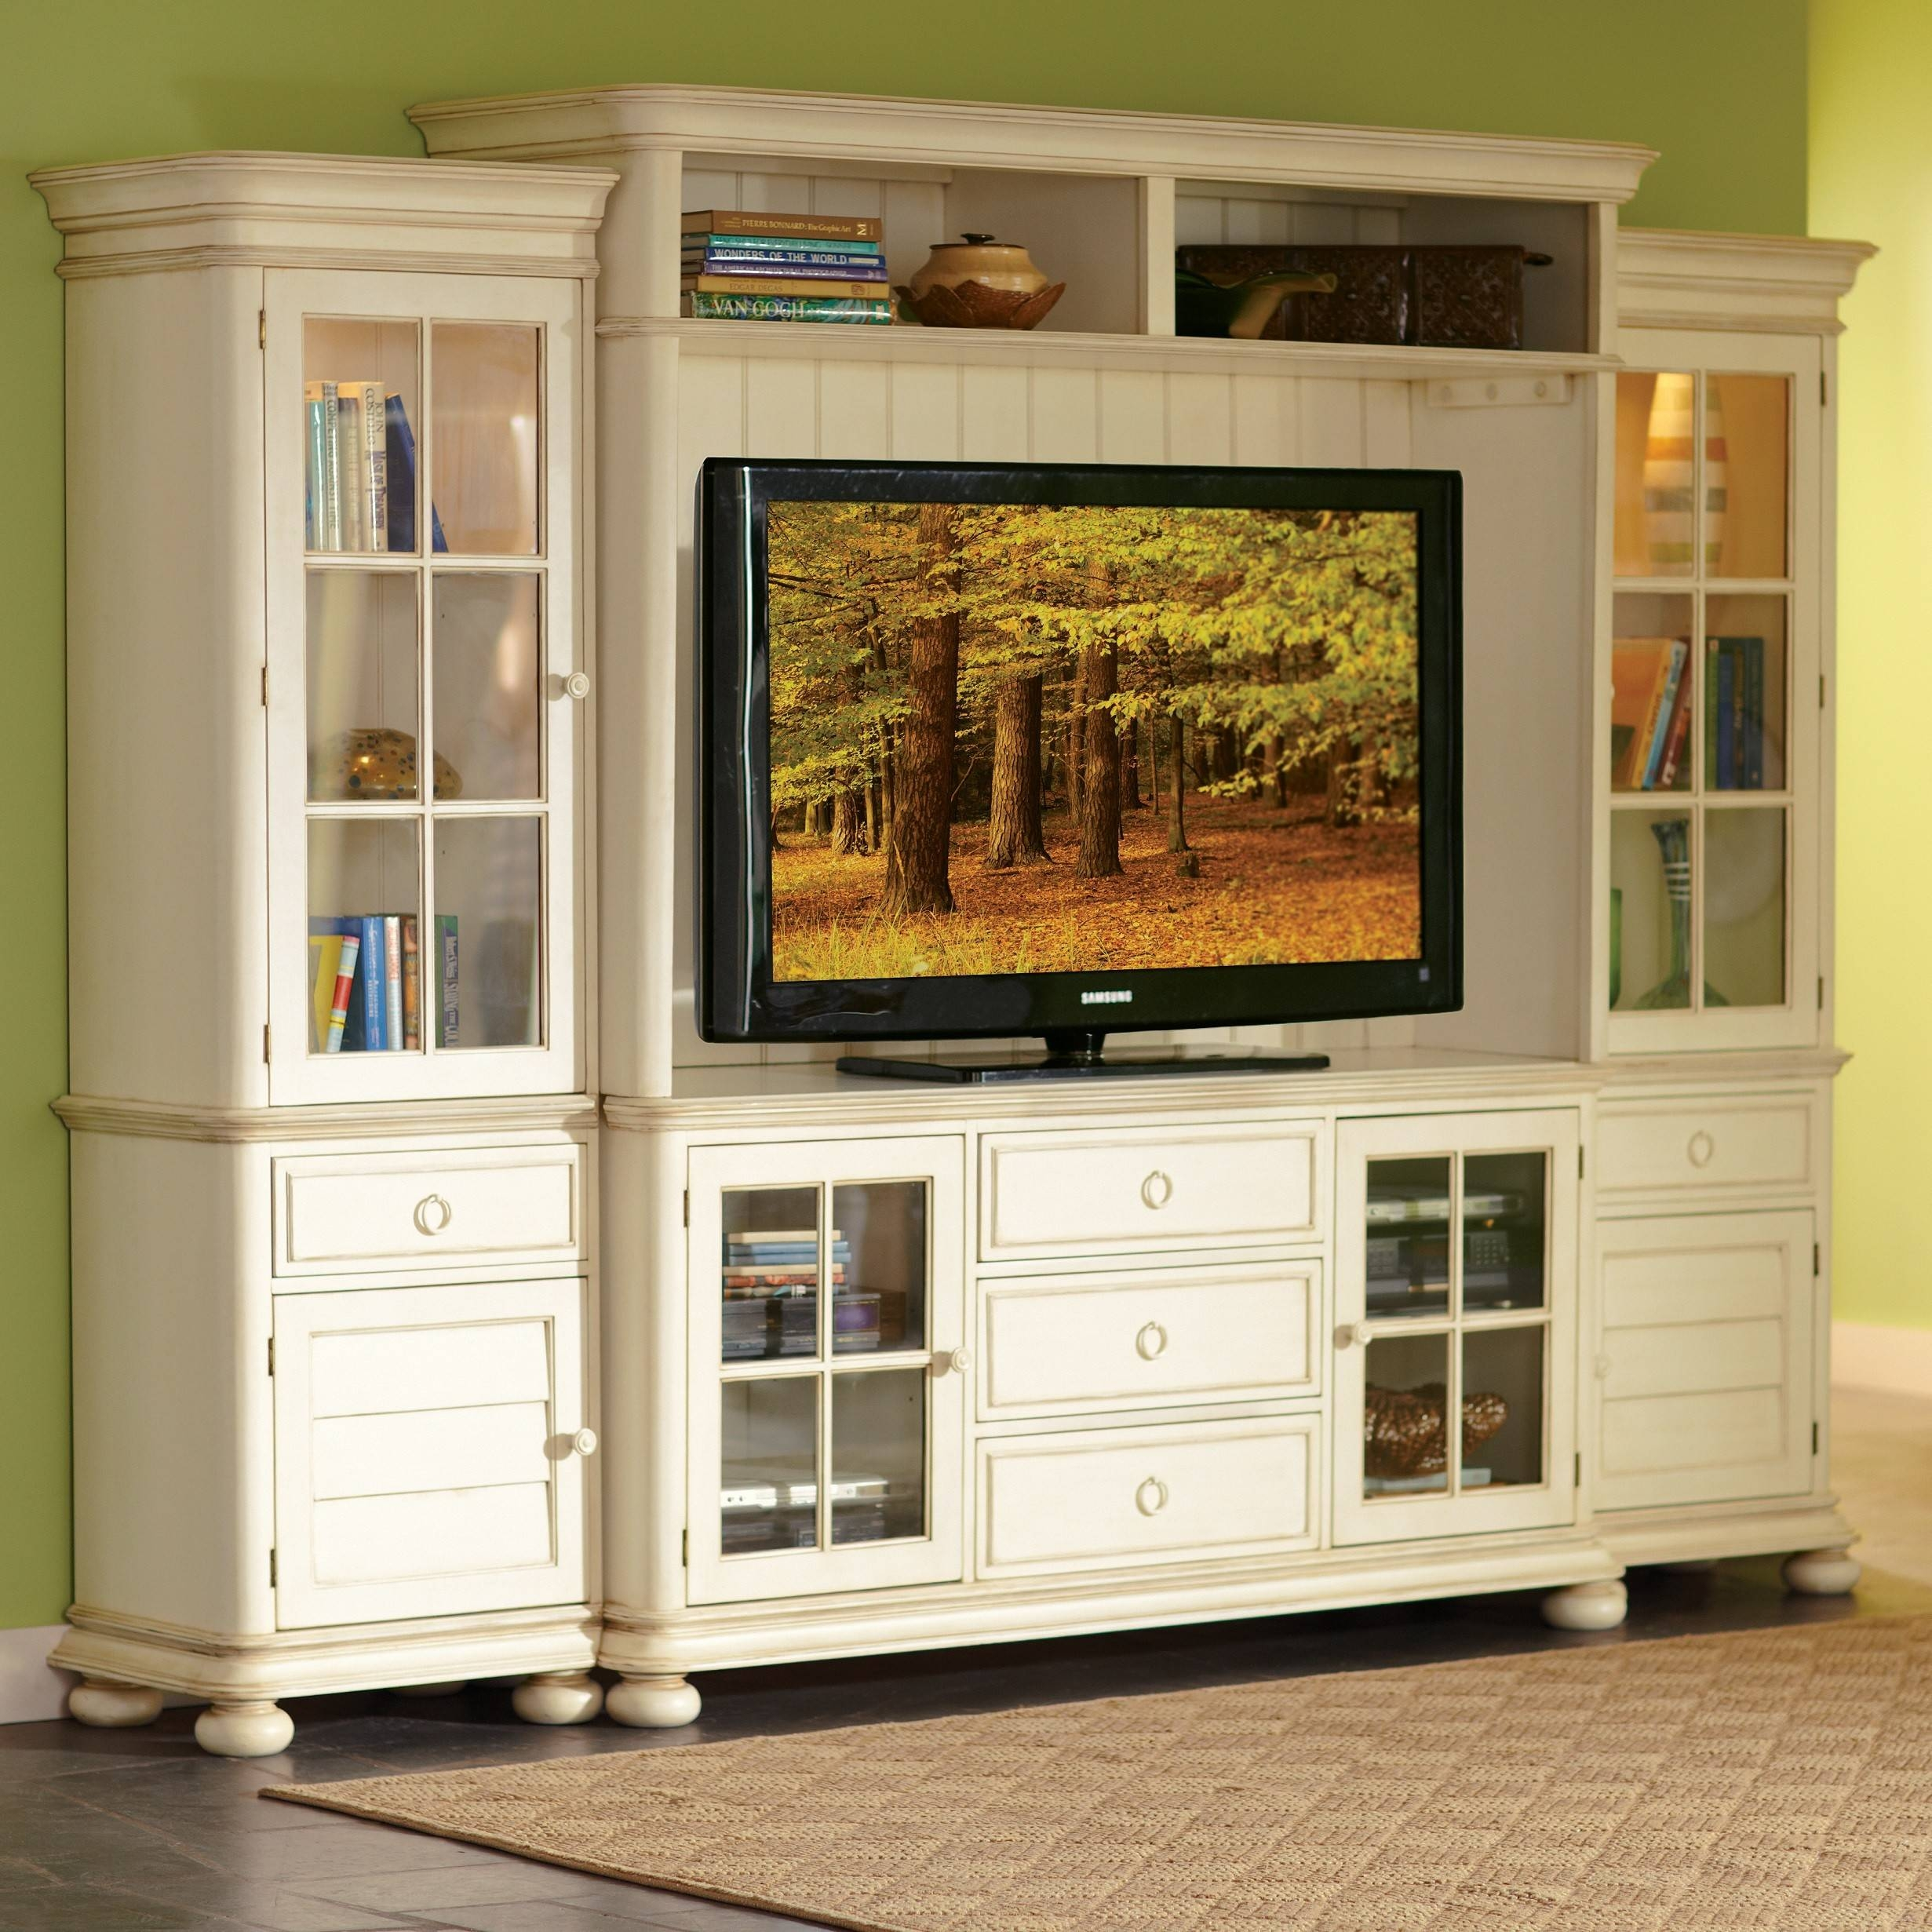 Wooden Tv Cabinets With Doors 42 With Wooden Tv Cabinets With throughout Wooden Tv Cabinets With Glass Doors (Image 15 of 15)